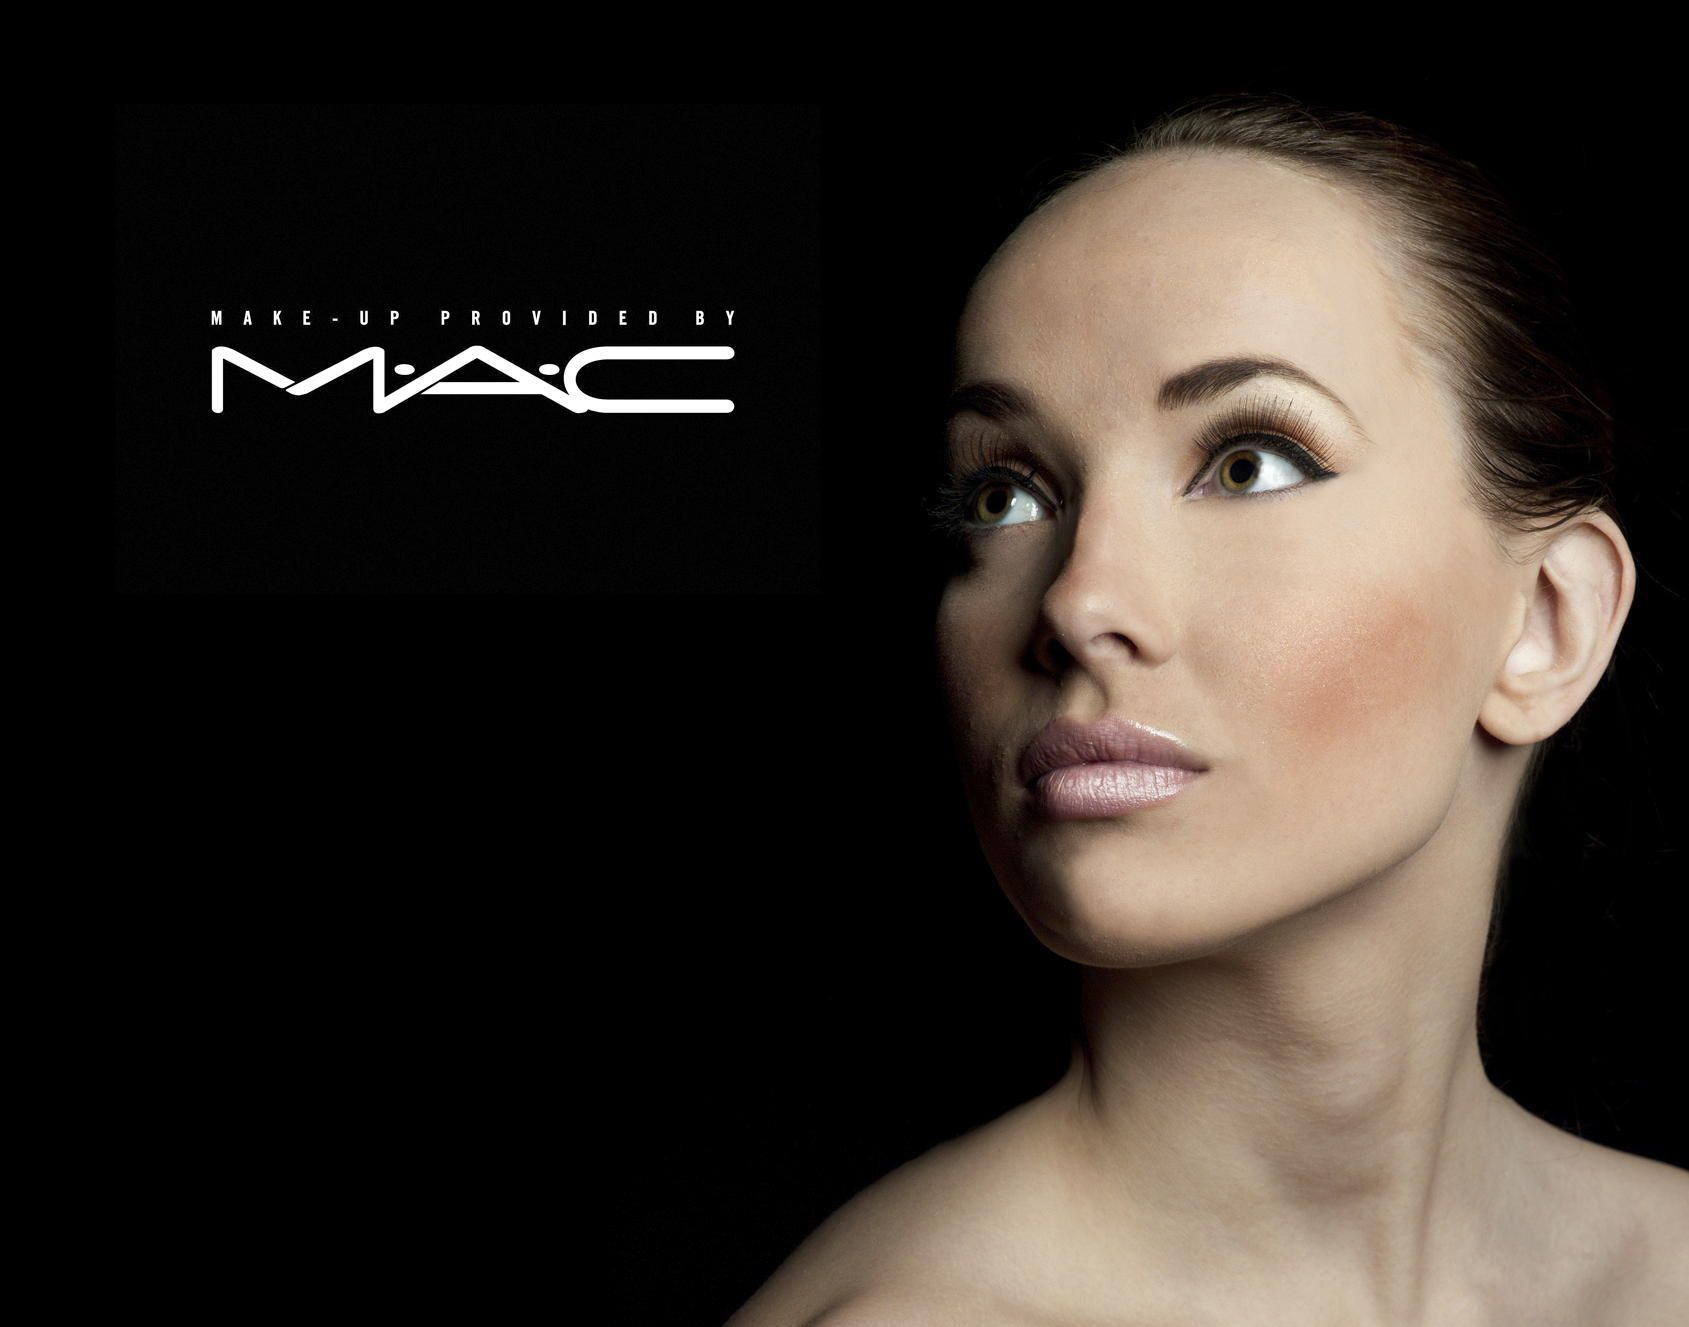 Mac Cosmetics Models Google Search Mac Makeup Makeup Advertisement Mac Cosmetics